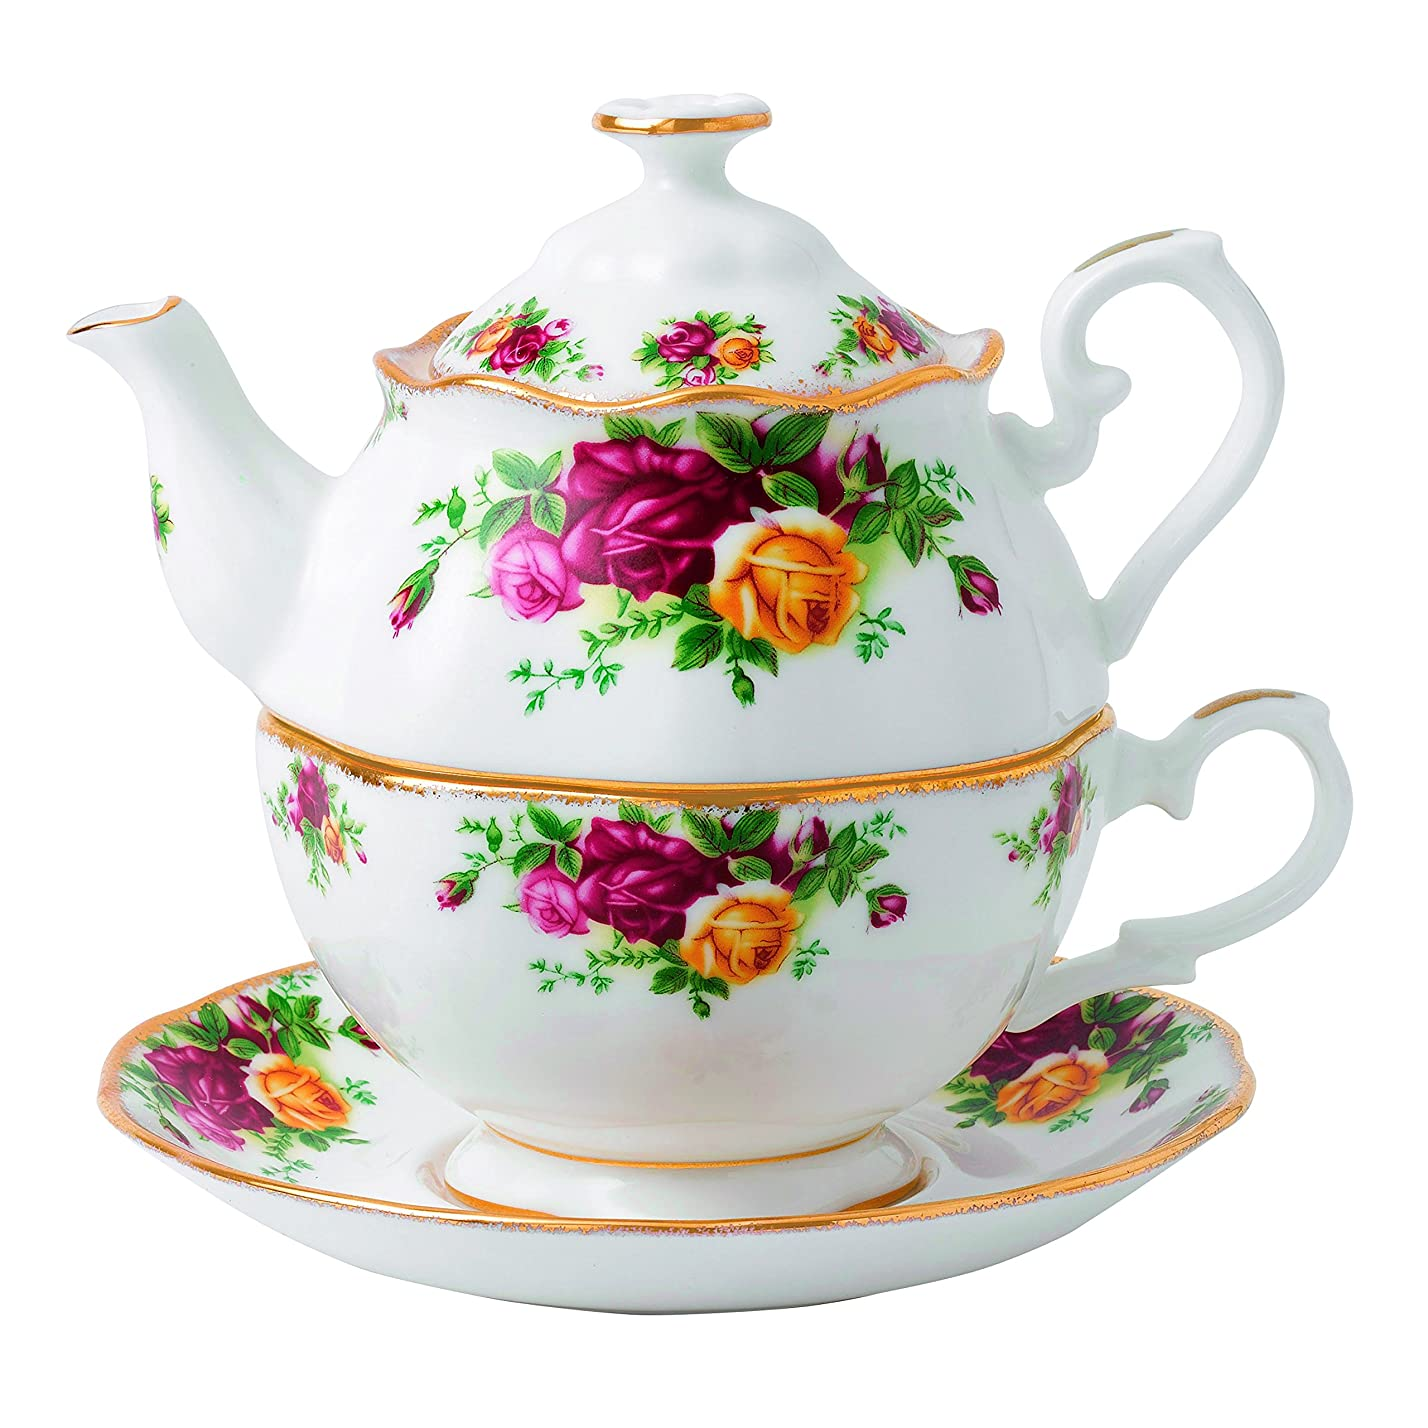 歩道または歌Royal Albert Old Country Roses for One Tea Pot, 16.5 oz, Multicolor by Royal Albert